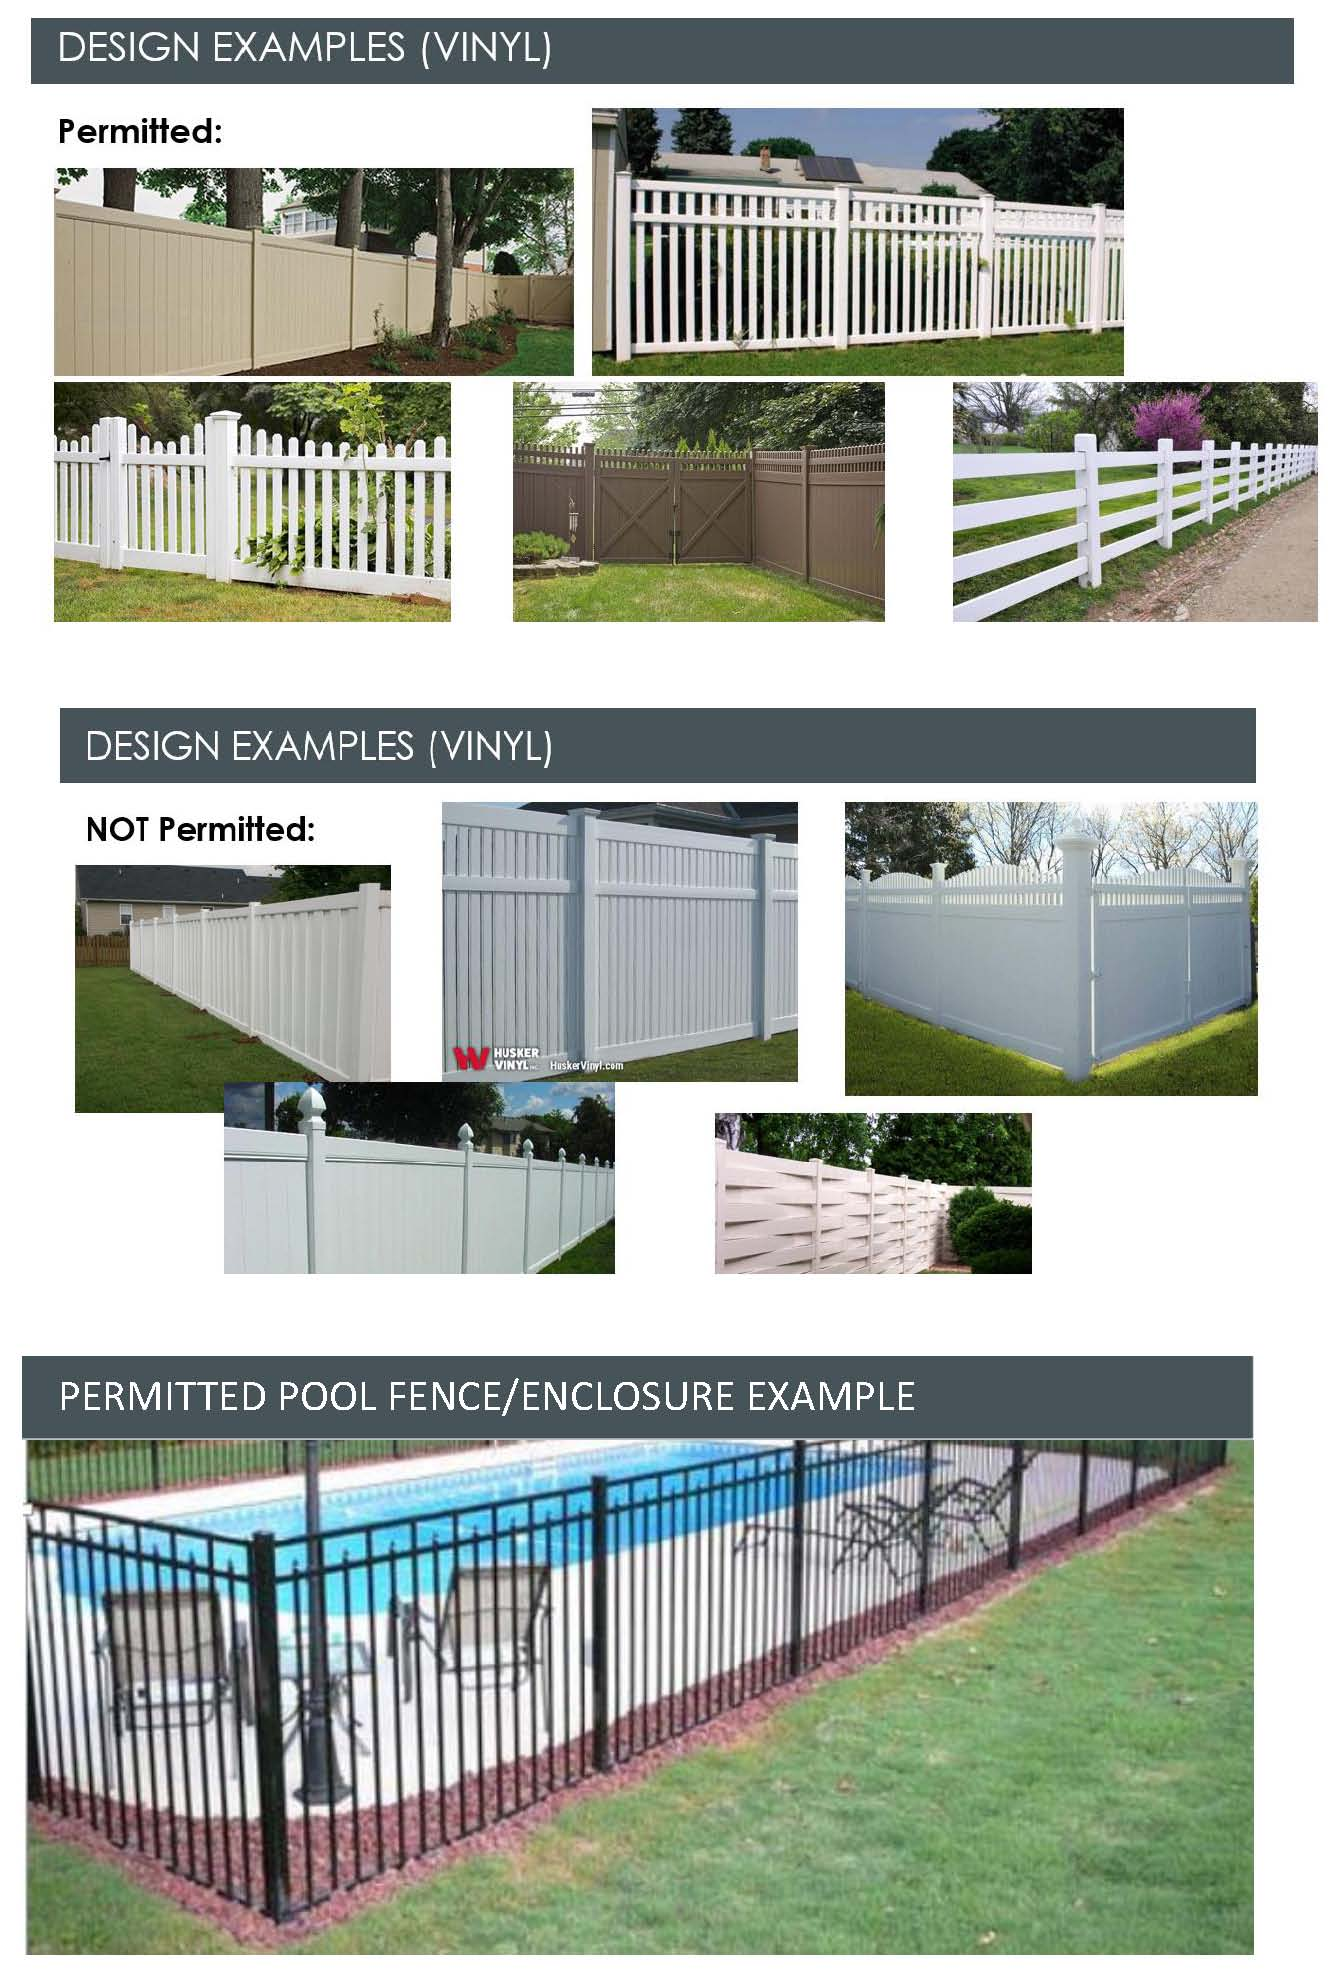 Fence Examples permitted & Not permitted